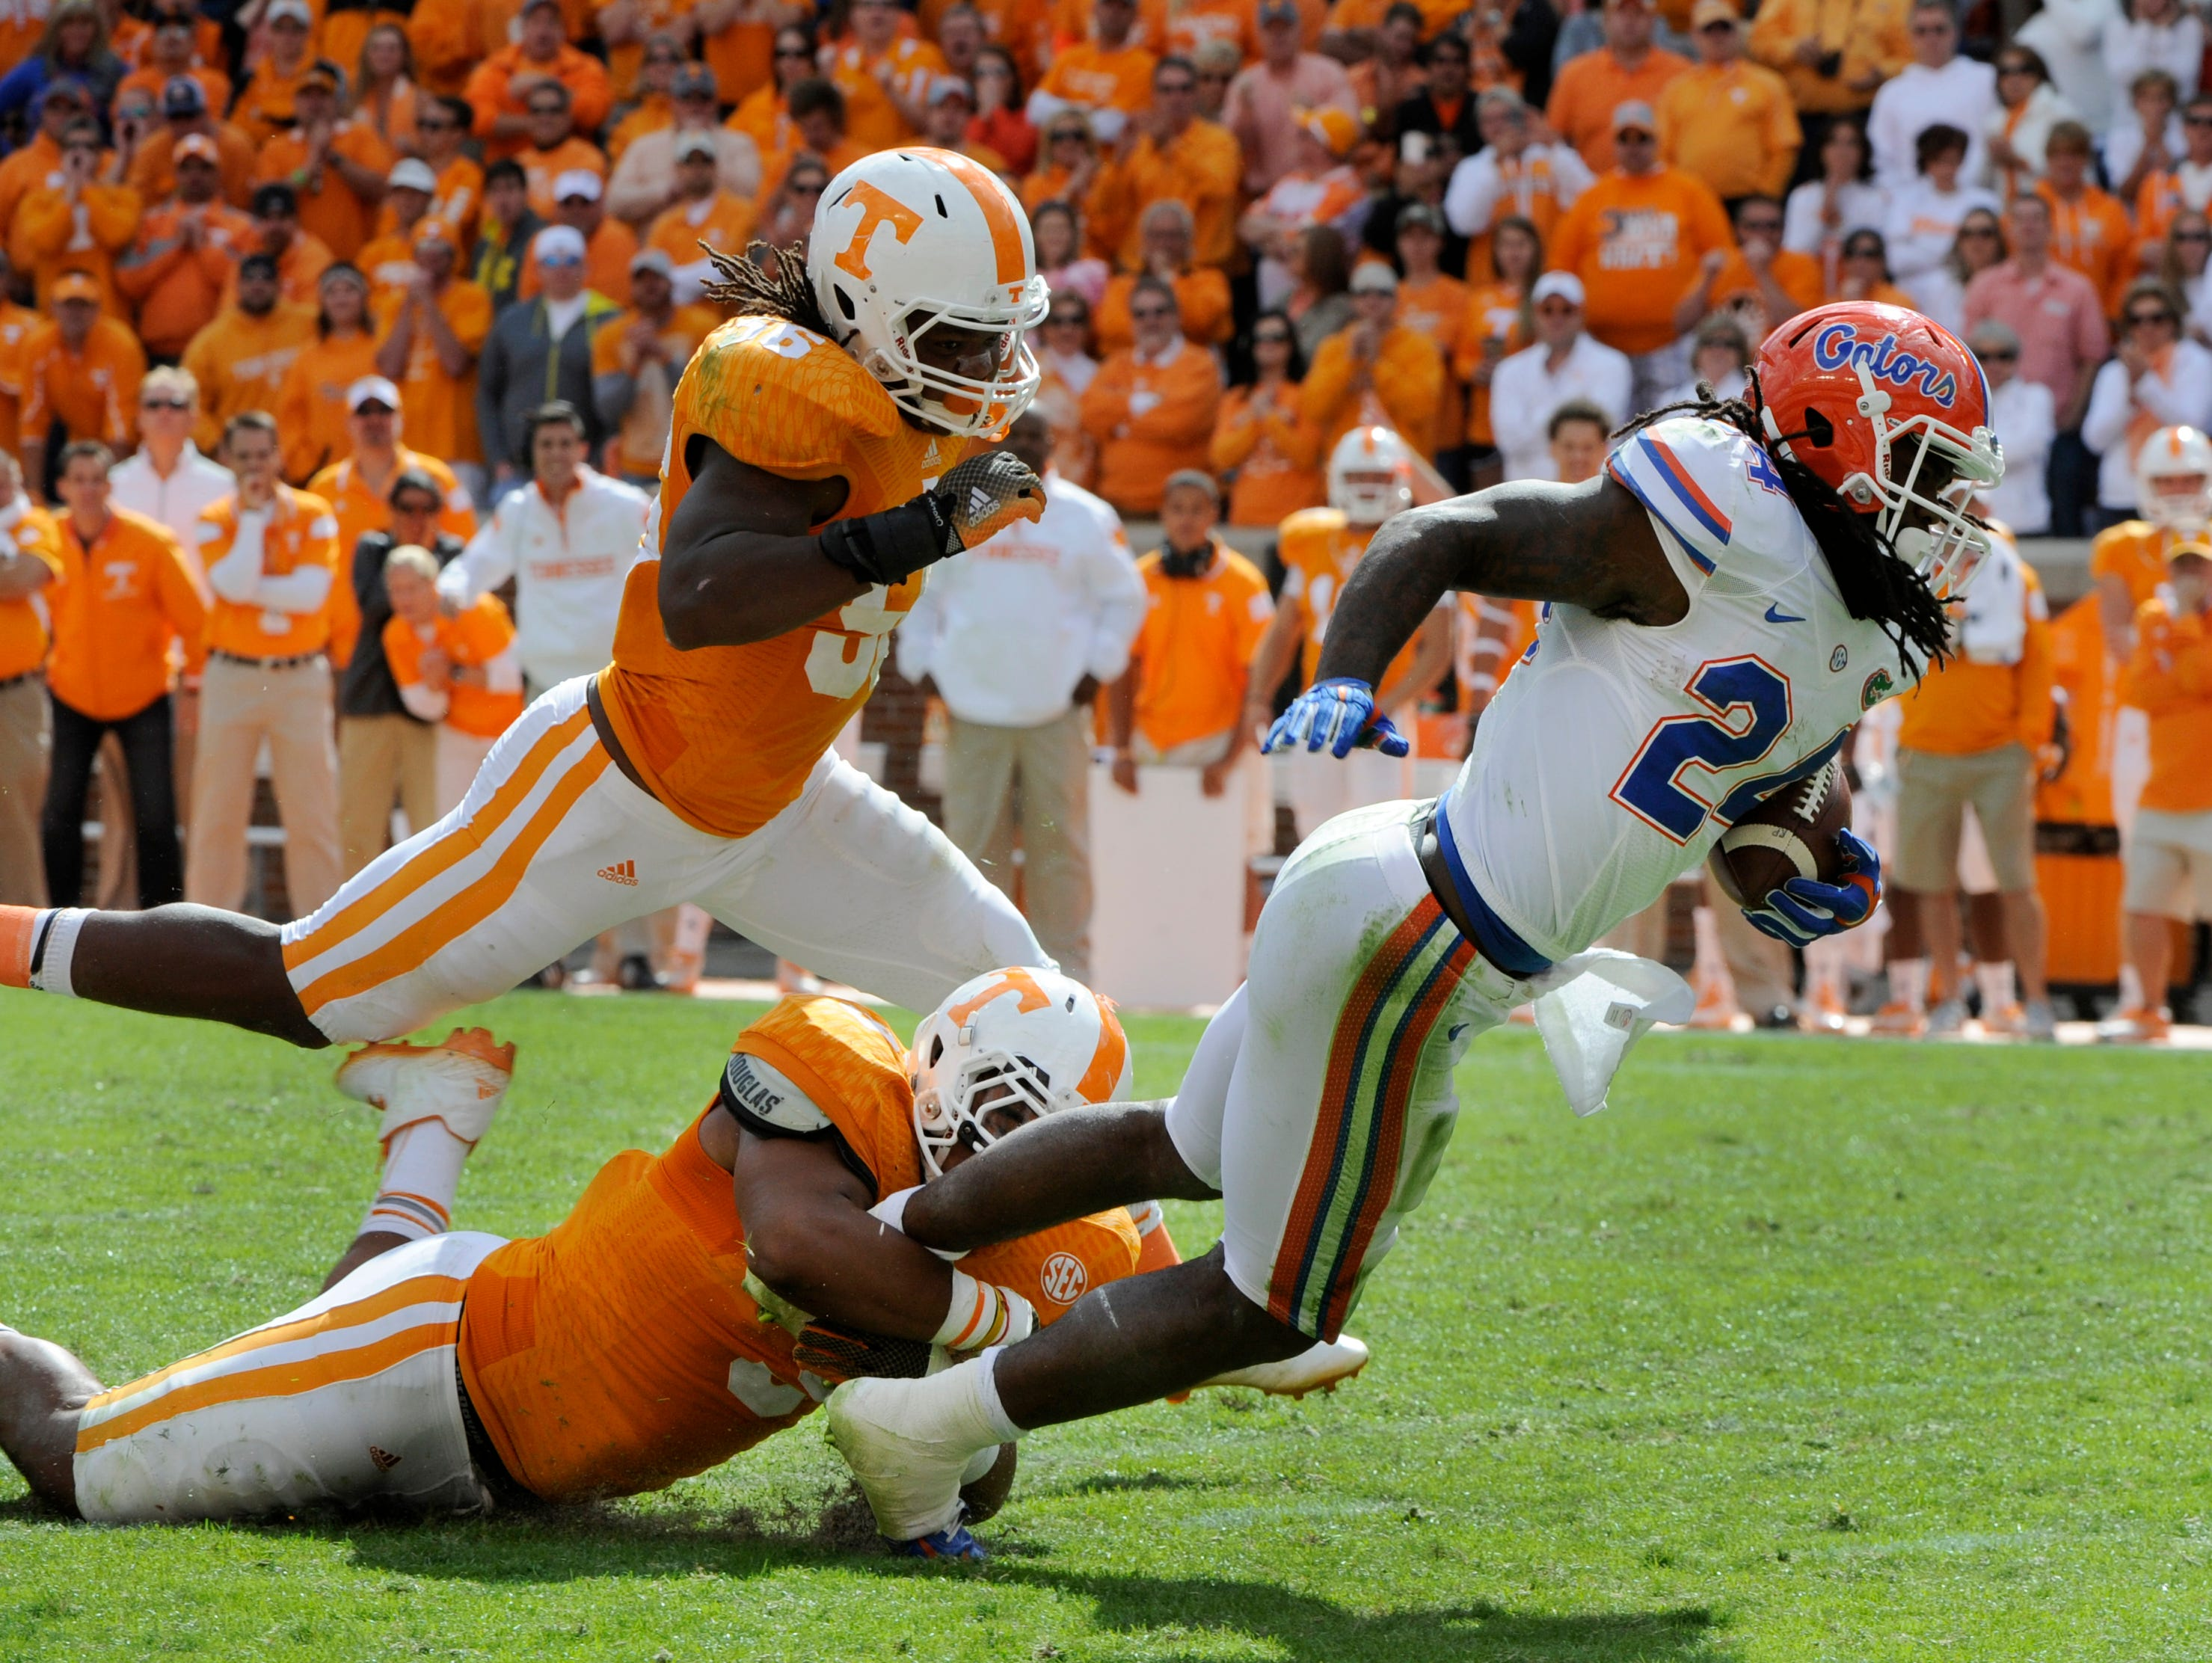 Tennessee defensive end Derek Barnett (9) tackles Florida running back Matt Jones (24) with linebacker Curt Maggitt (56) coming to assist during the second half in Neyland Stadium, Oct. 4, 2014, in Knoxville. Tennessee lost to Florida 10-9.